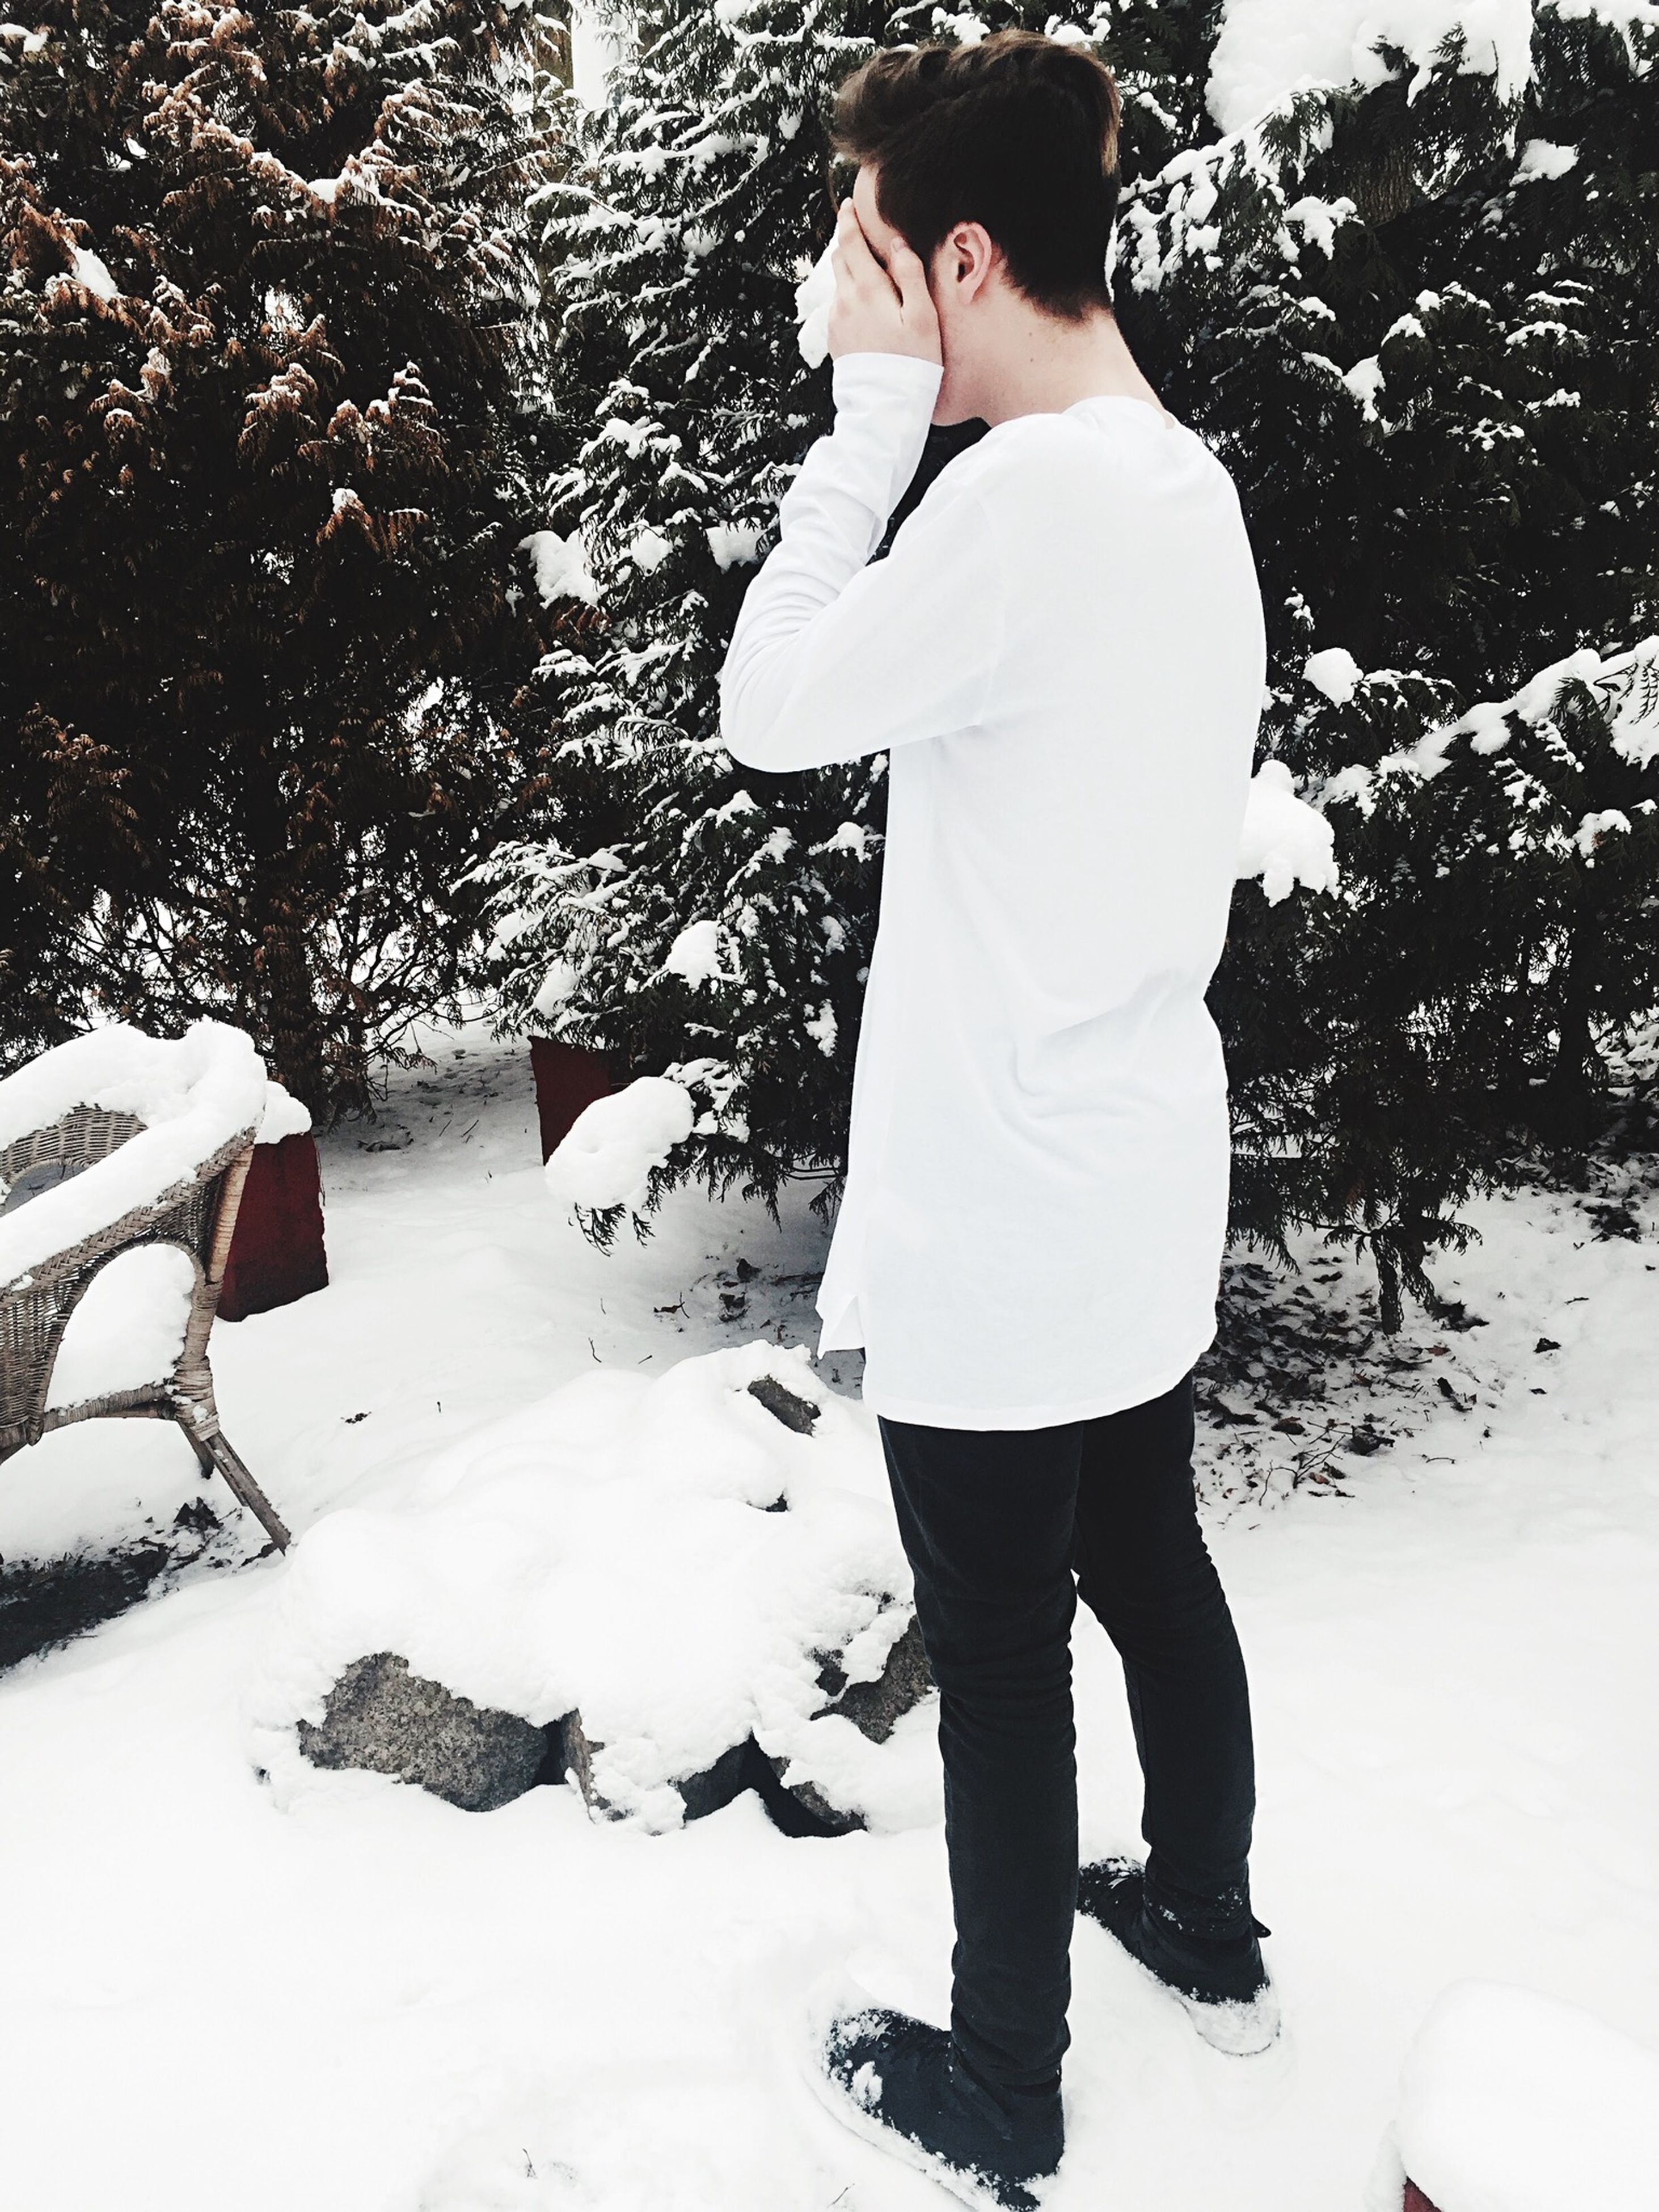 winter, snow, cold temperature, season, lifestyles, full length, standing, leisure activity, weather, casual clothing, rear view, walking, warm clothing, white color, tree, day, covering, outdoors